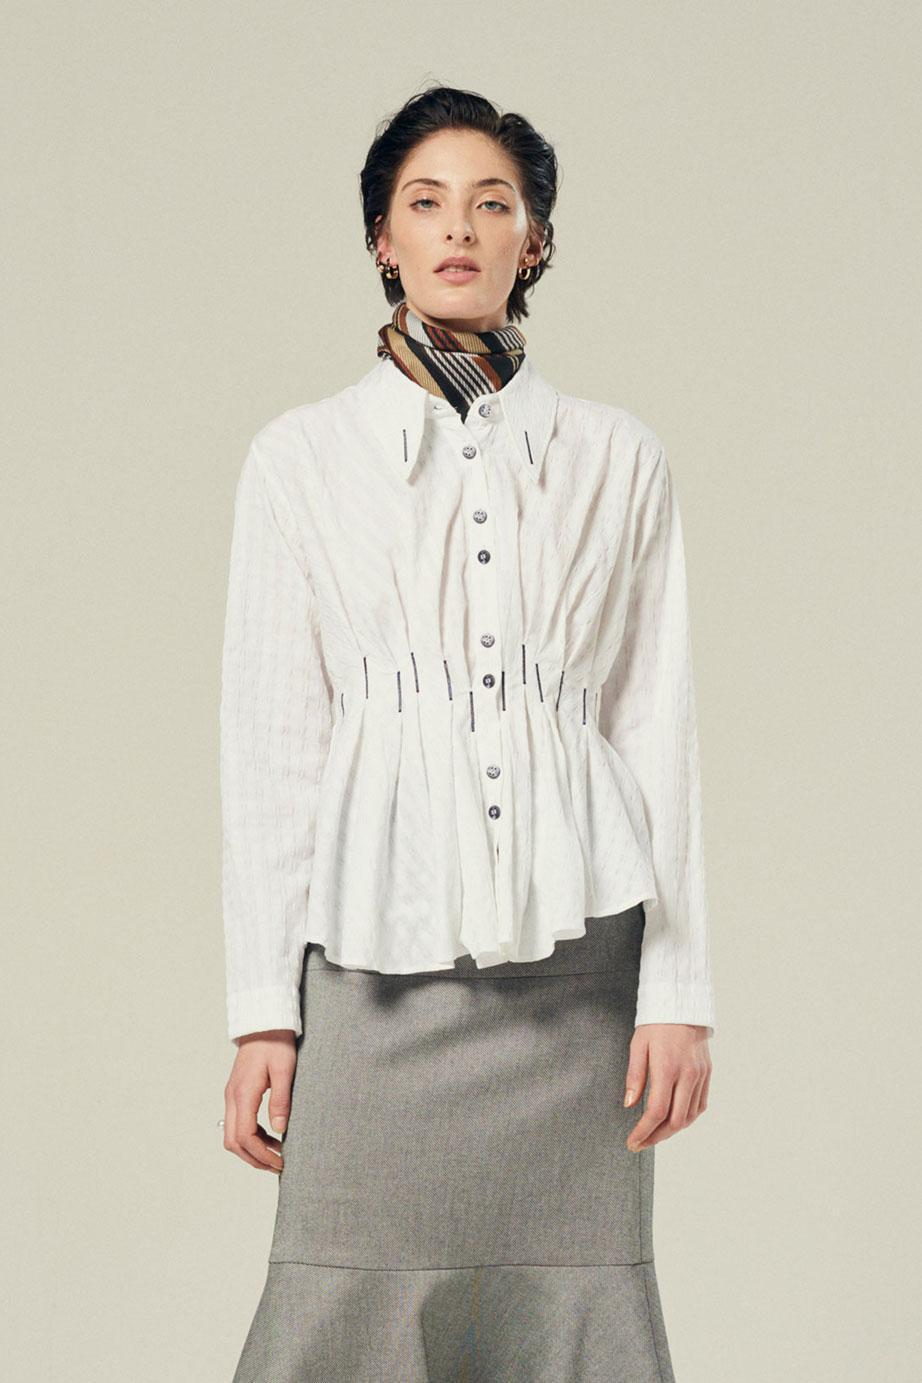 waisted pleated shirt in white textured cotton